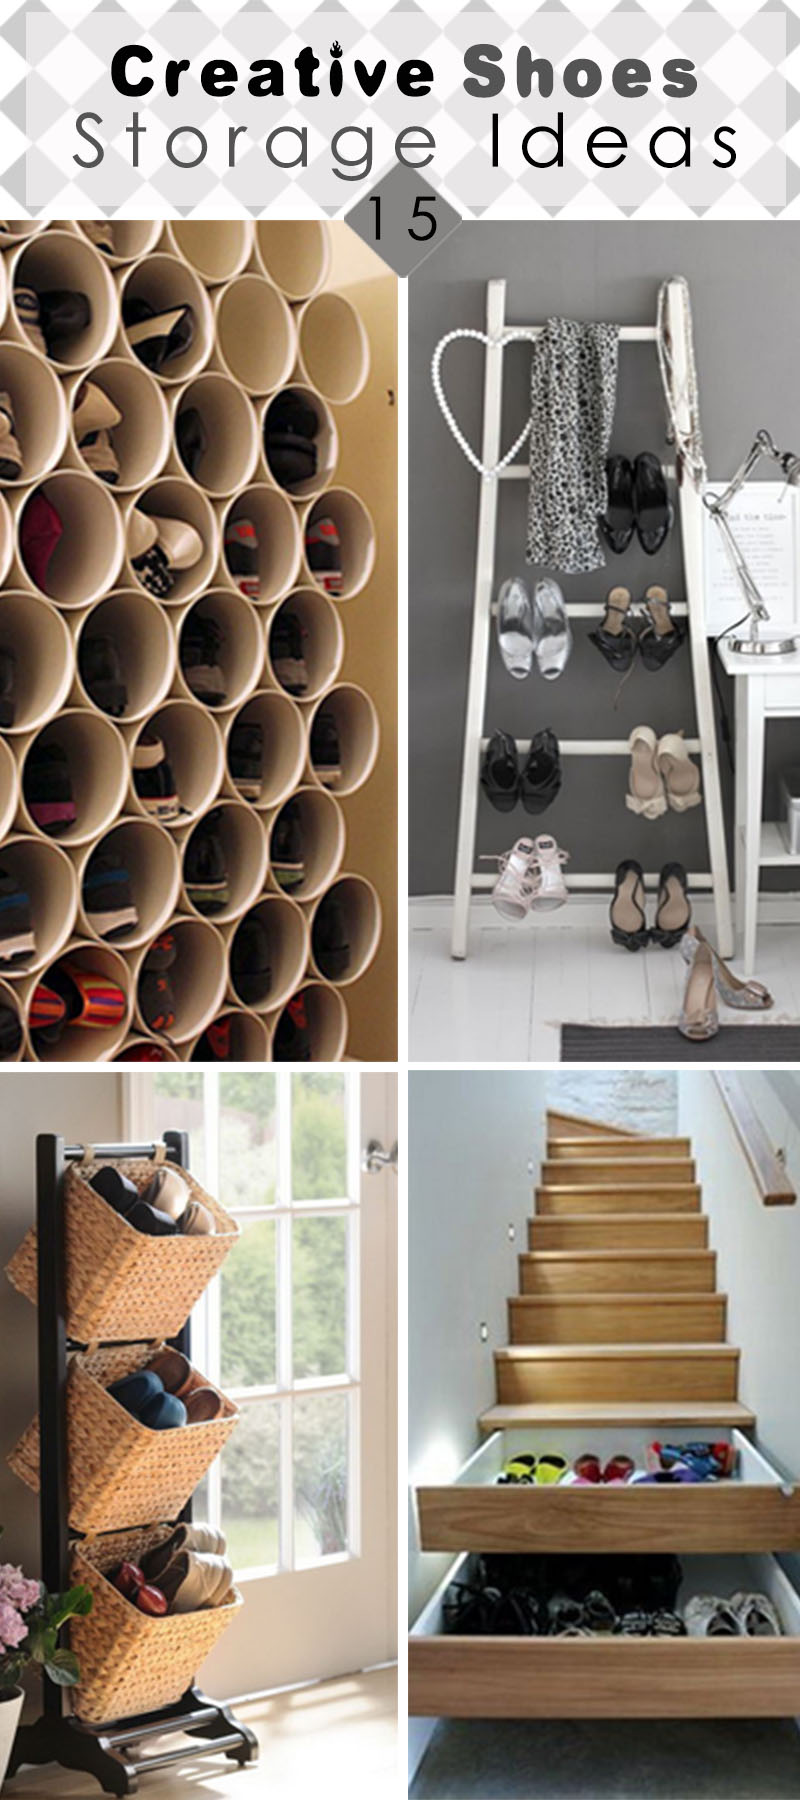 Creative Shoes Storage Ideas